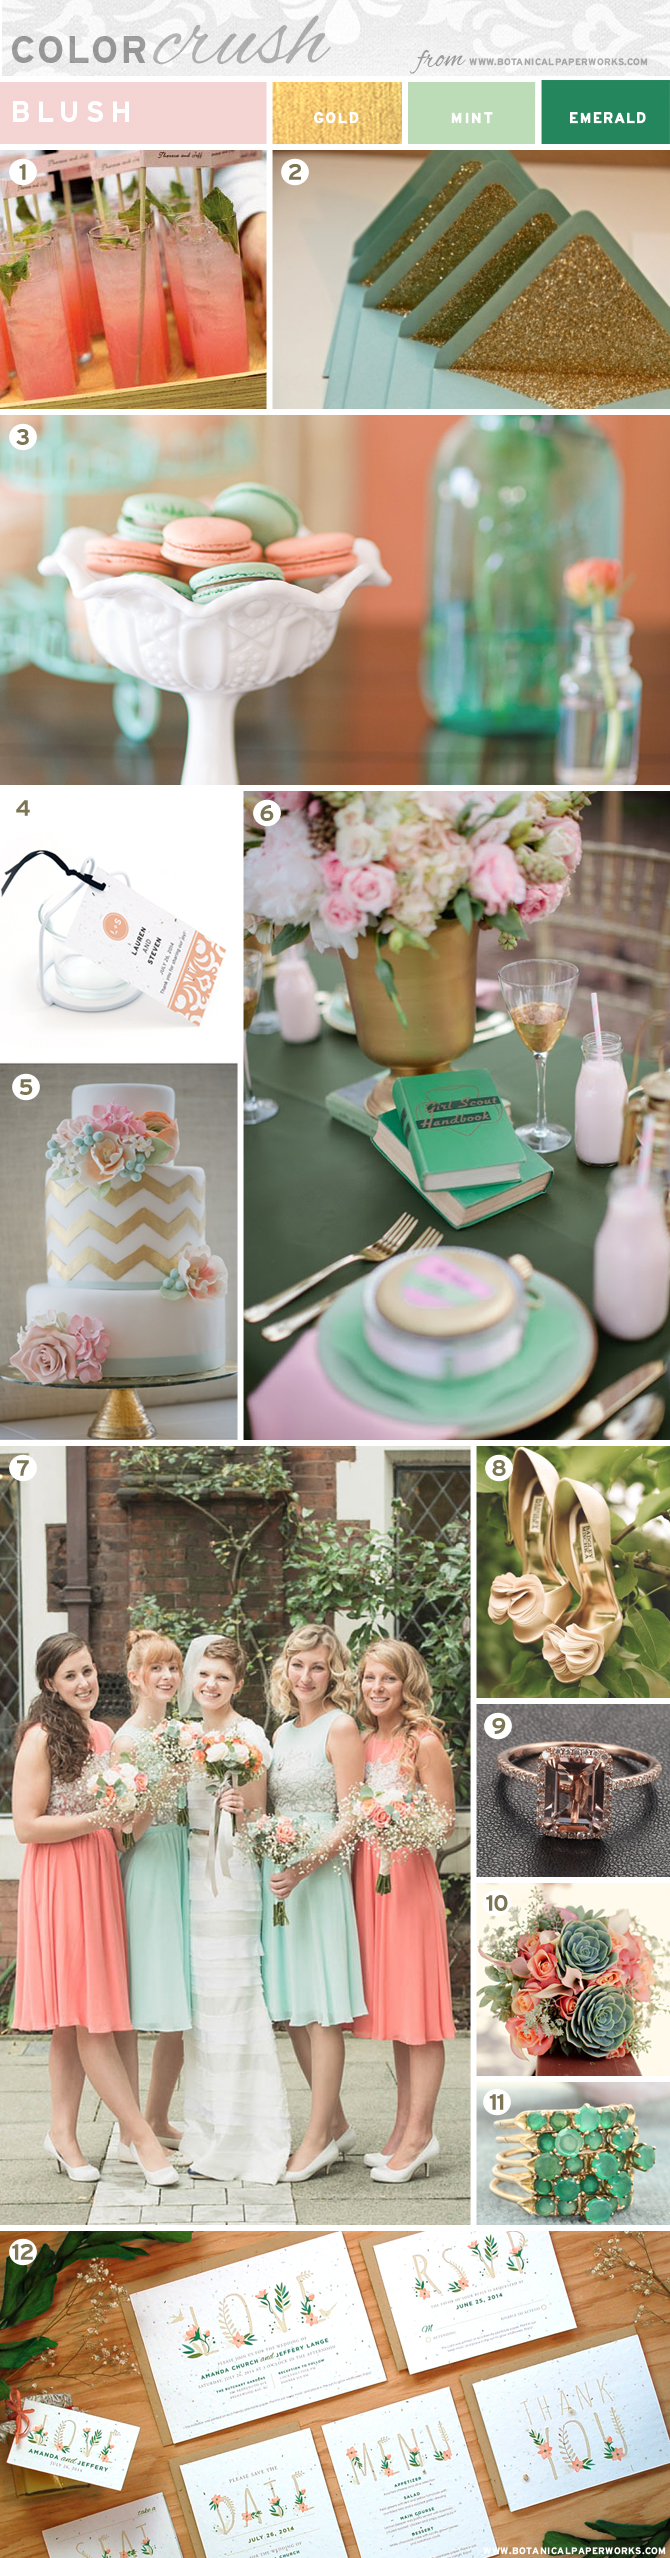 In love with this color palette: Blush, Mint, Emerald and Gold...I have a Color Crush too!